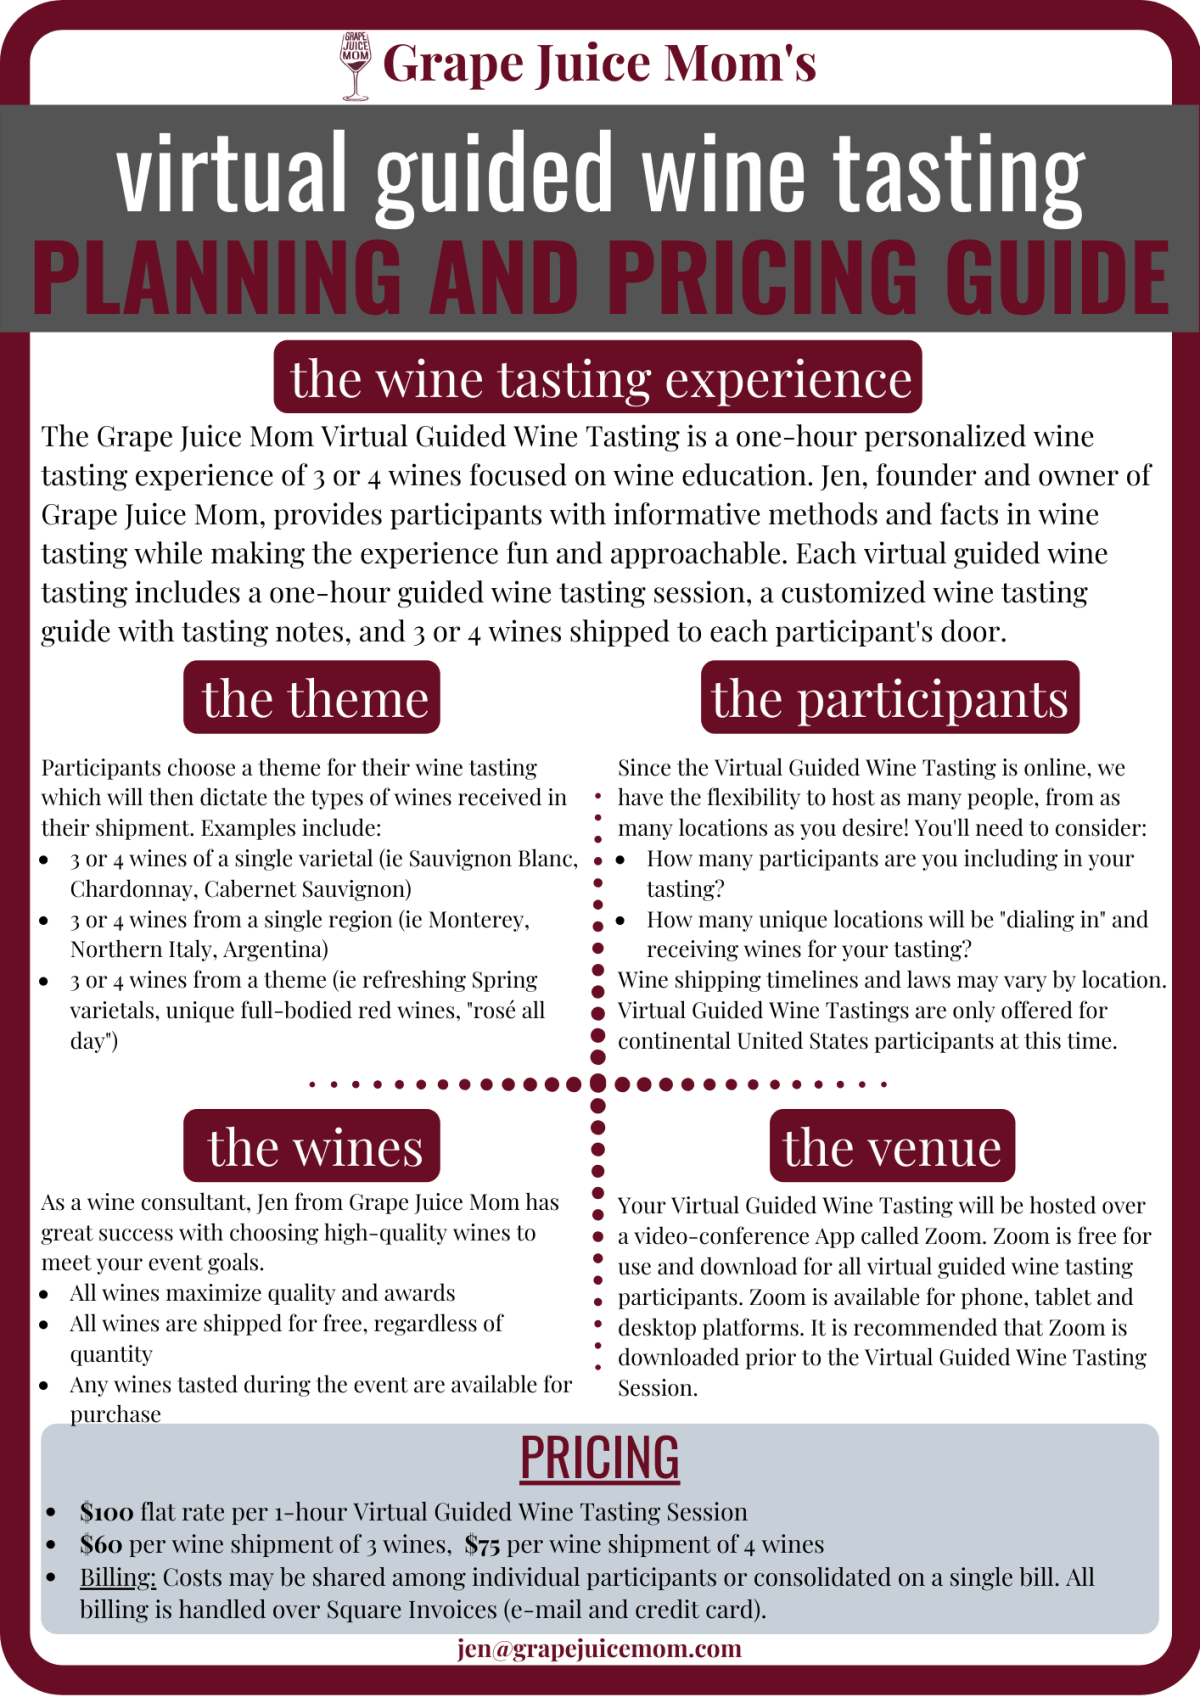 Virtual Guided Wine Tasting Pricing (1)